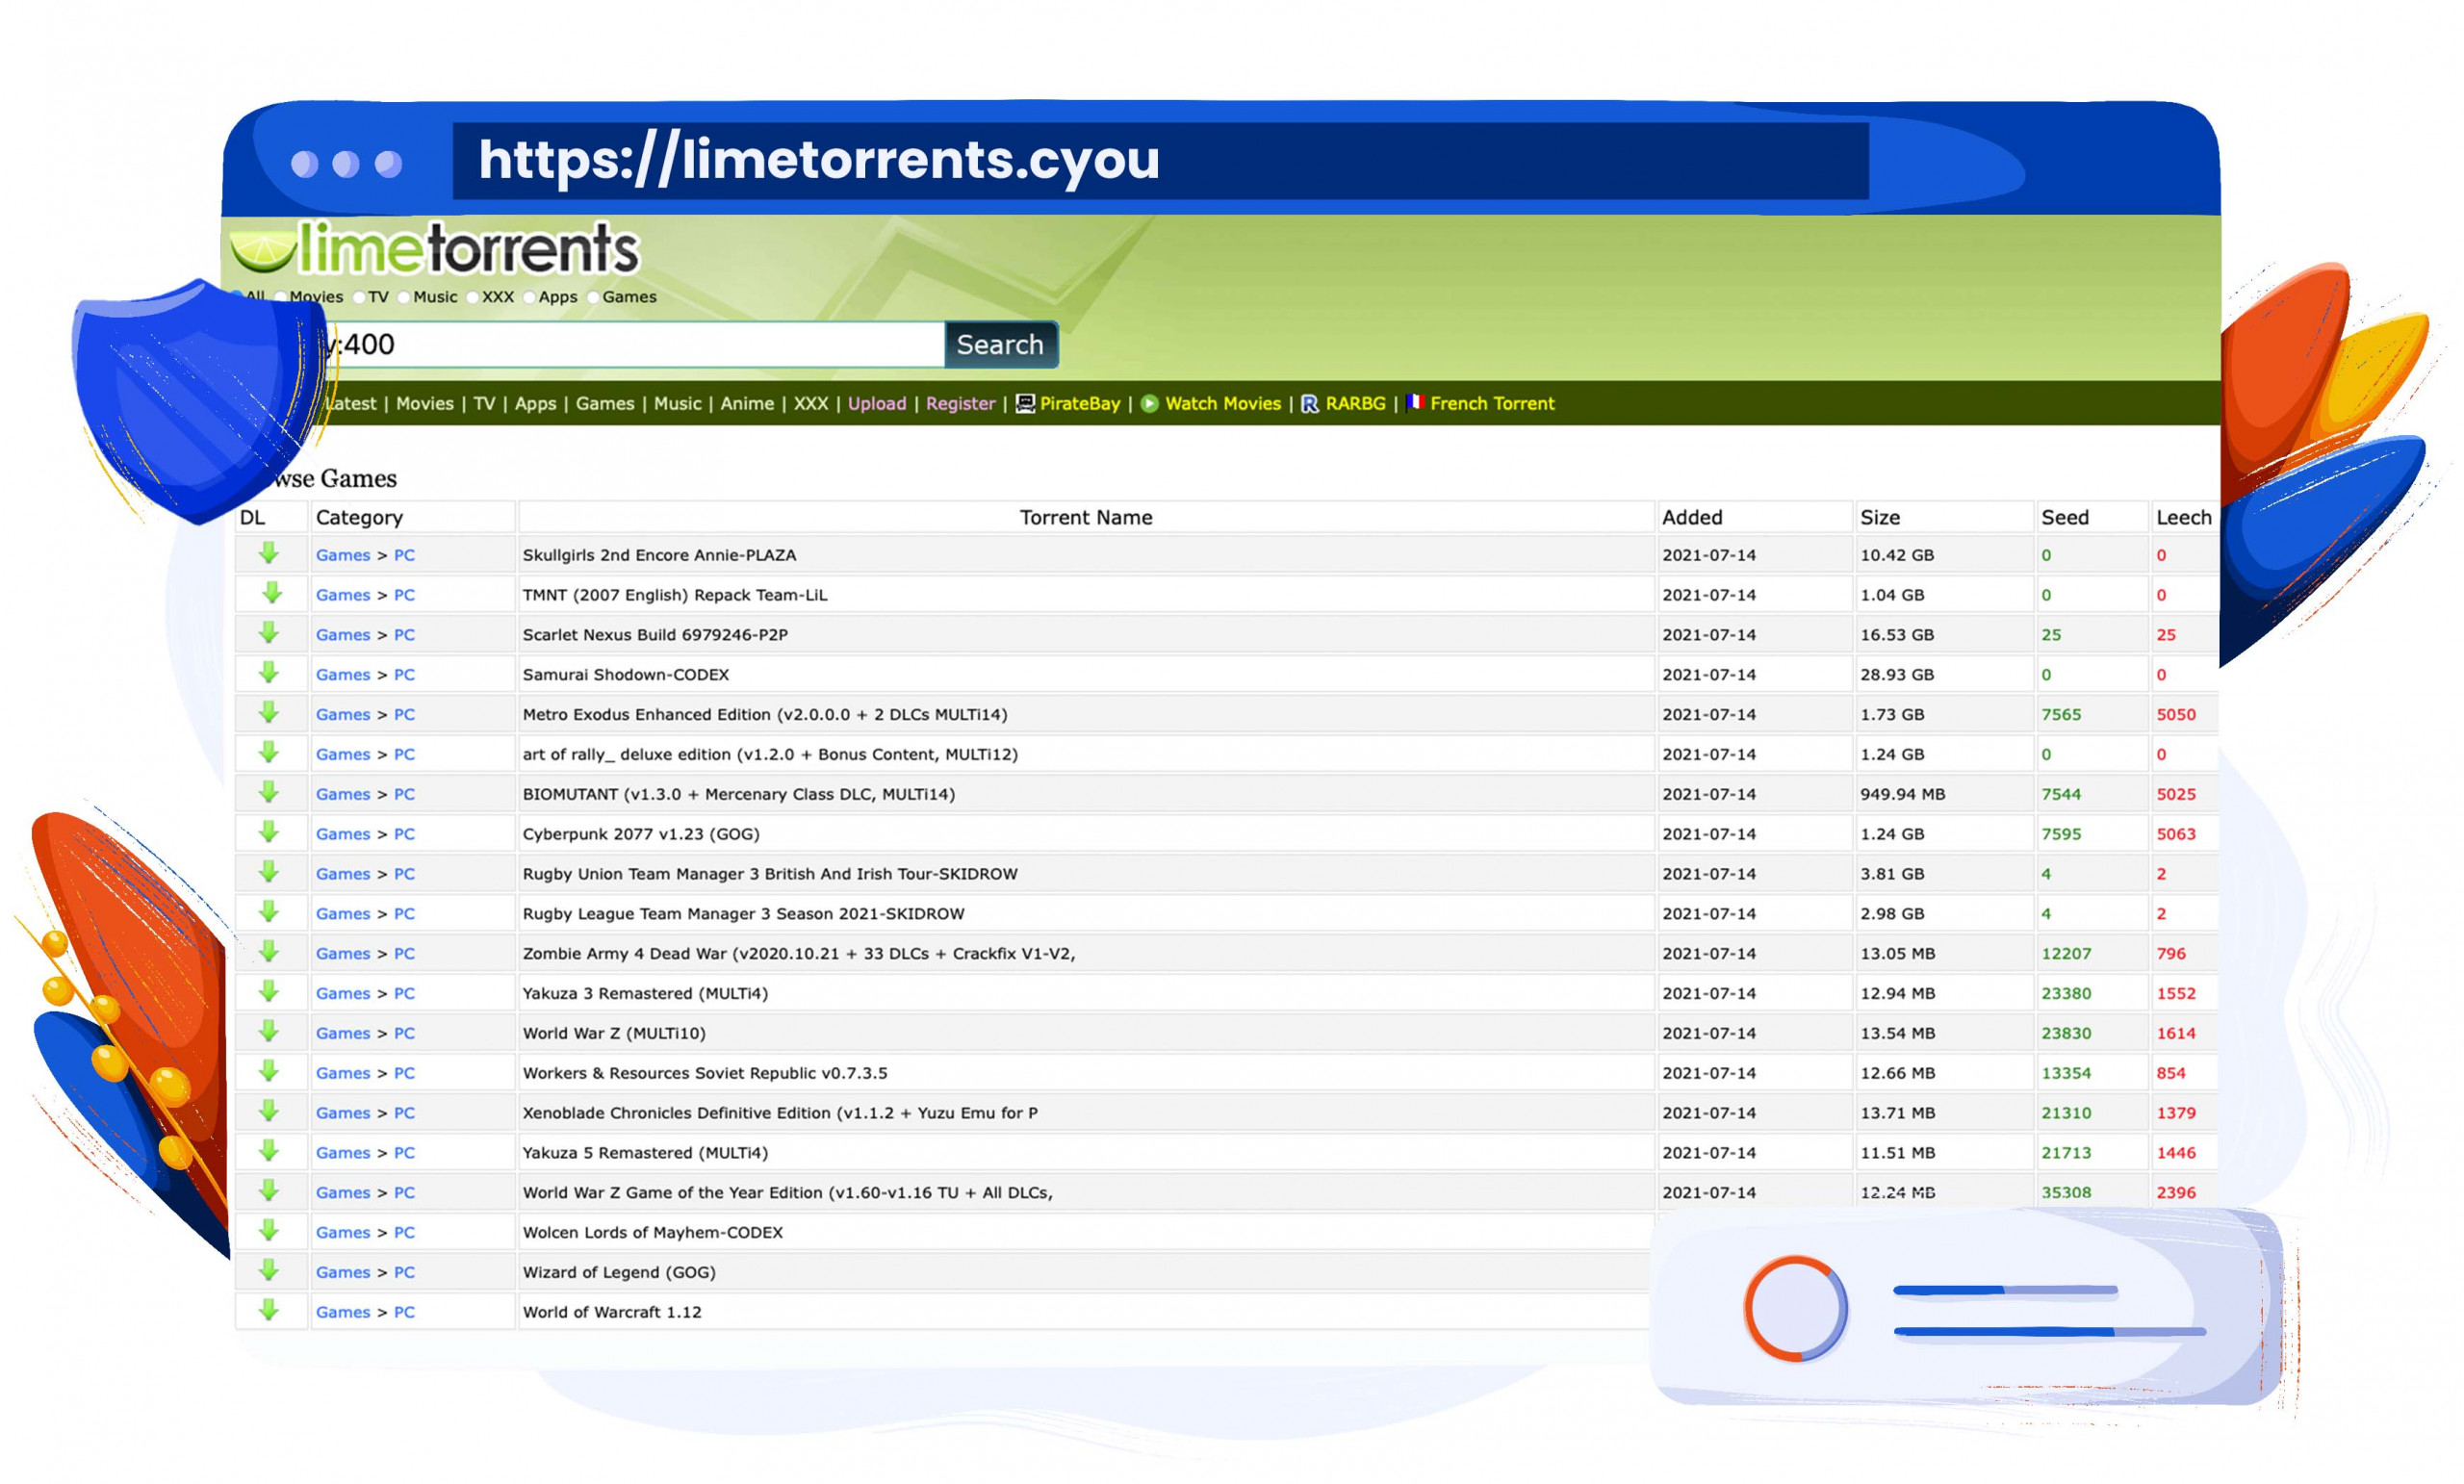 LimeTorrents has a wide catalogue of files